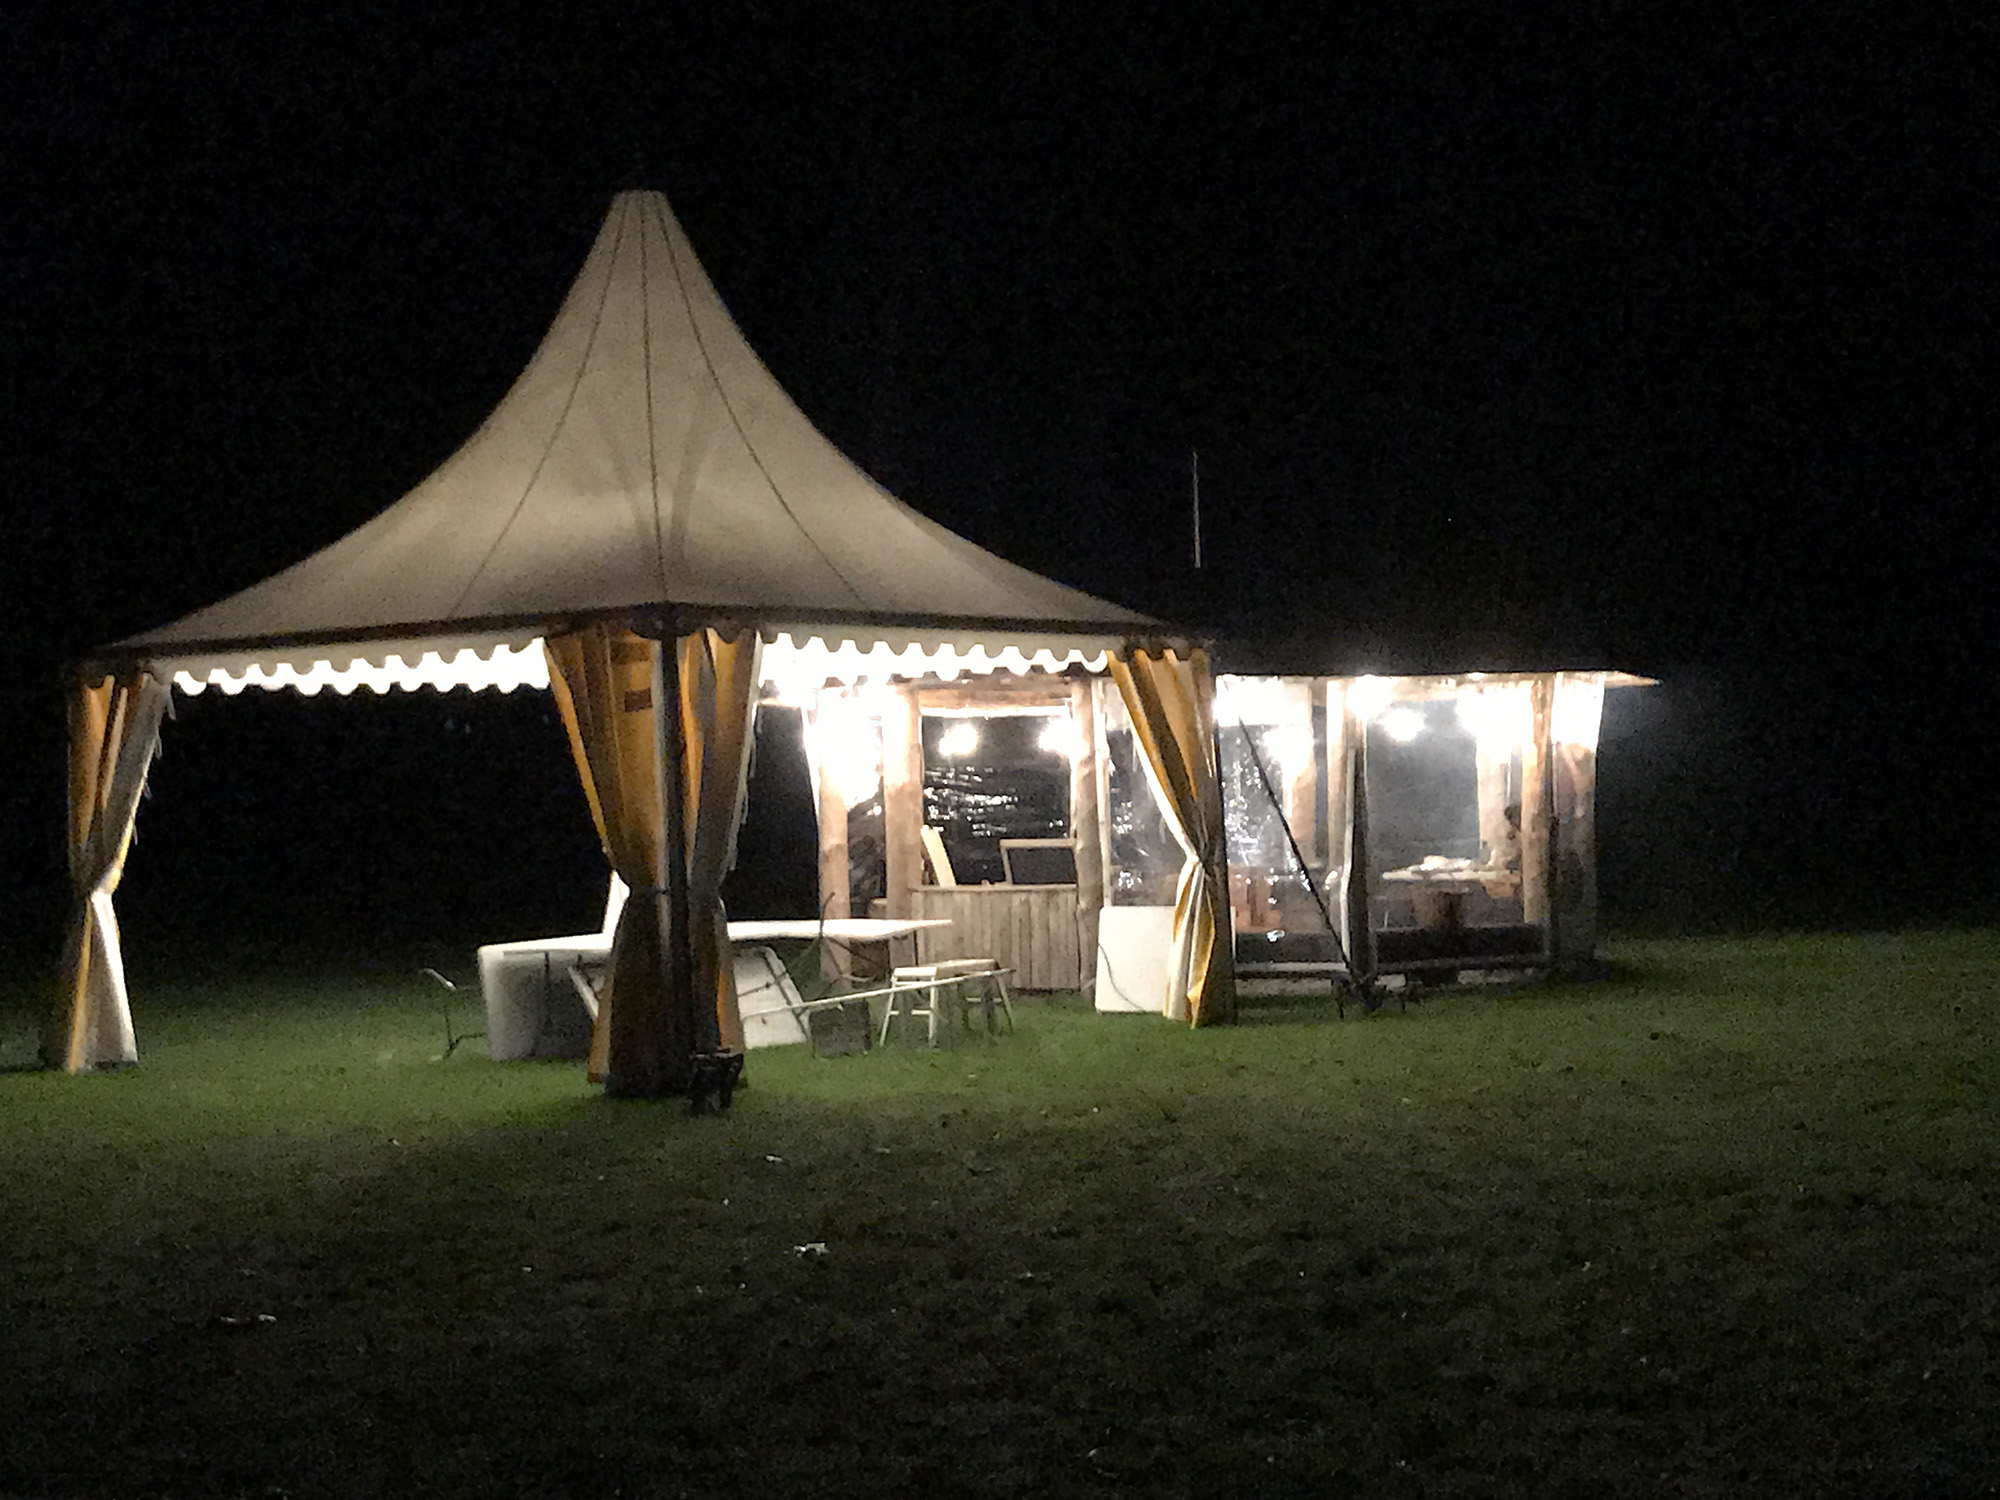 Evening events in the camping field